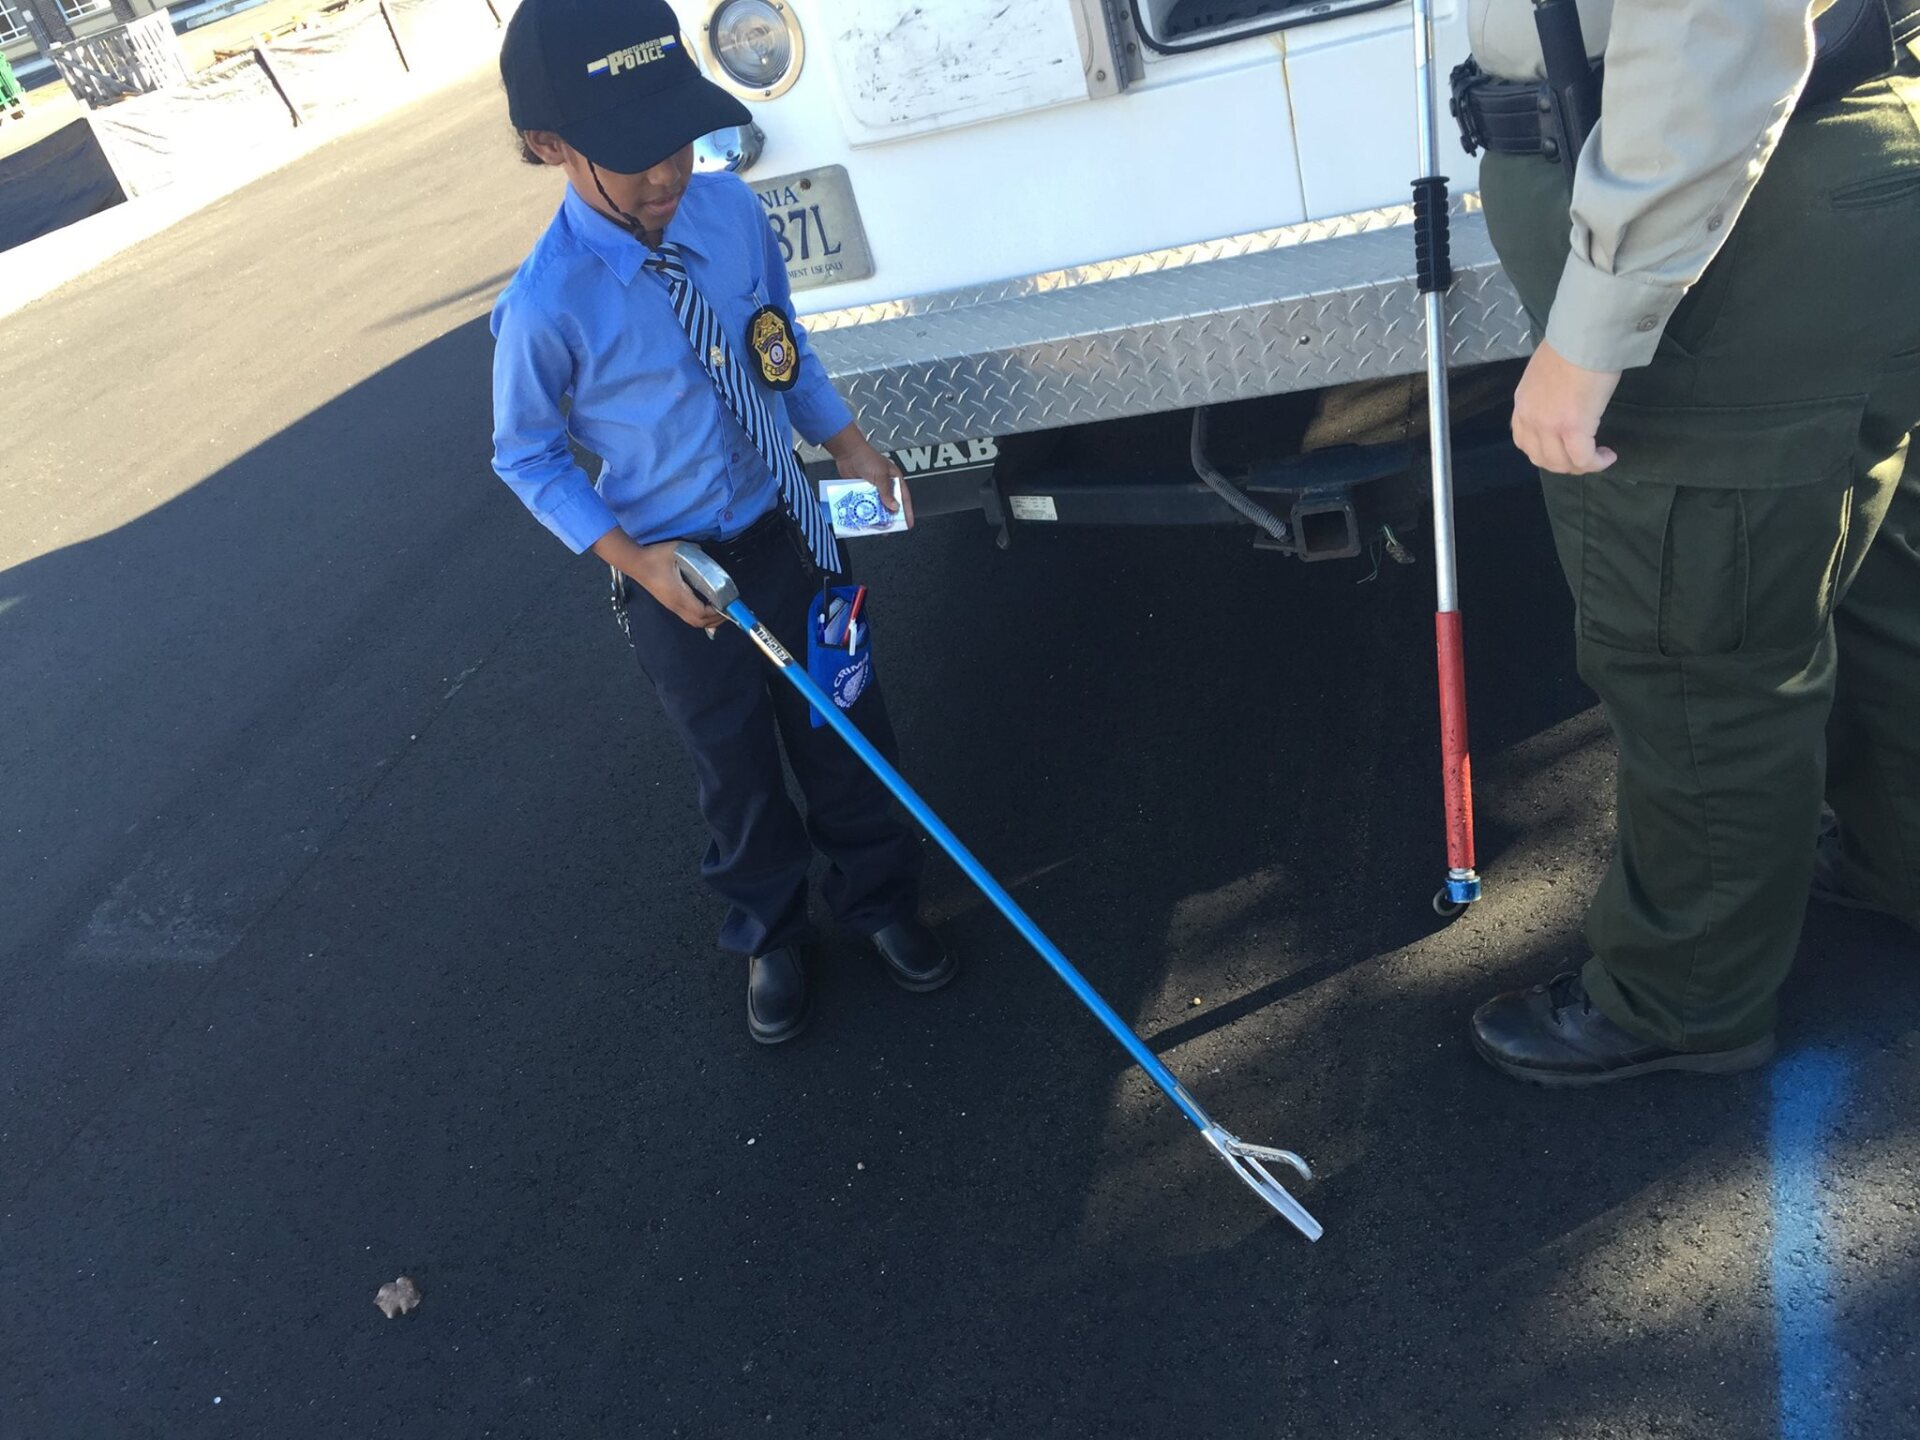 Photos: 8-year-old author becomes Portsmouth Police Detective for aday